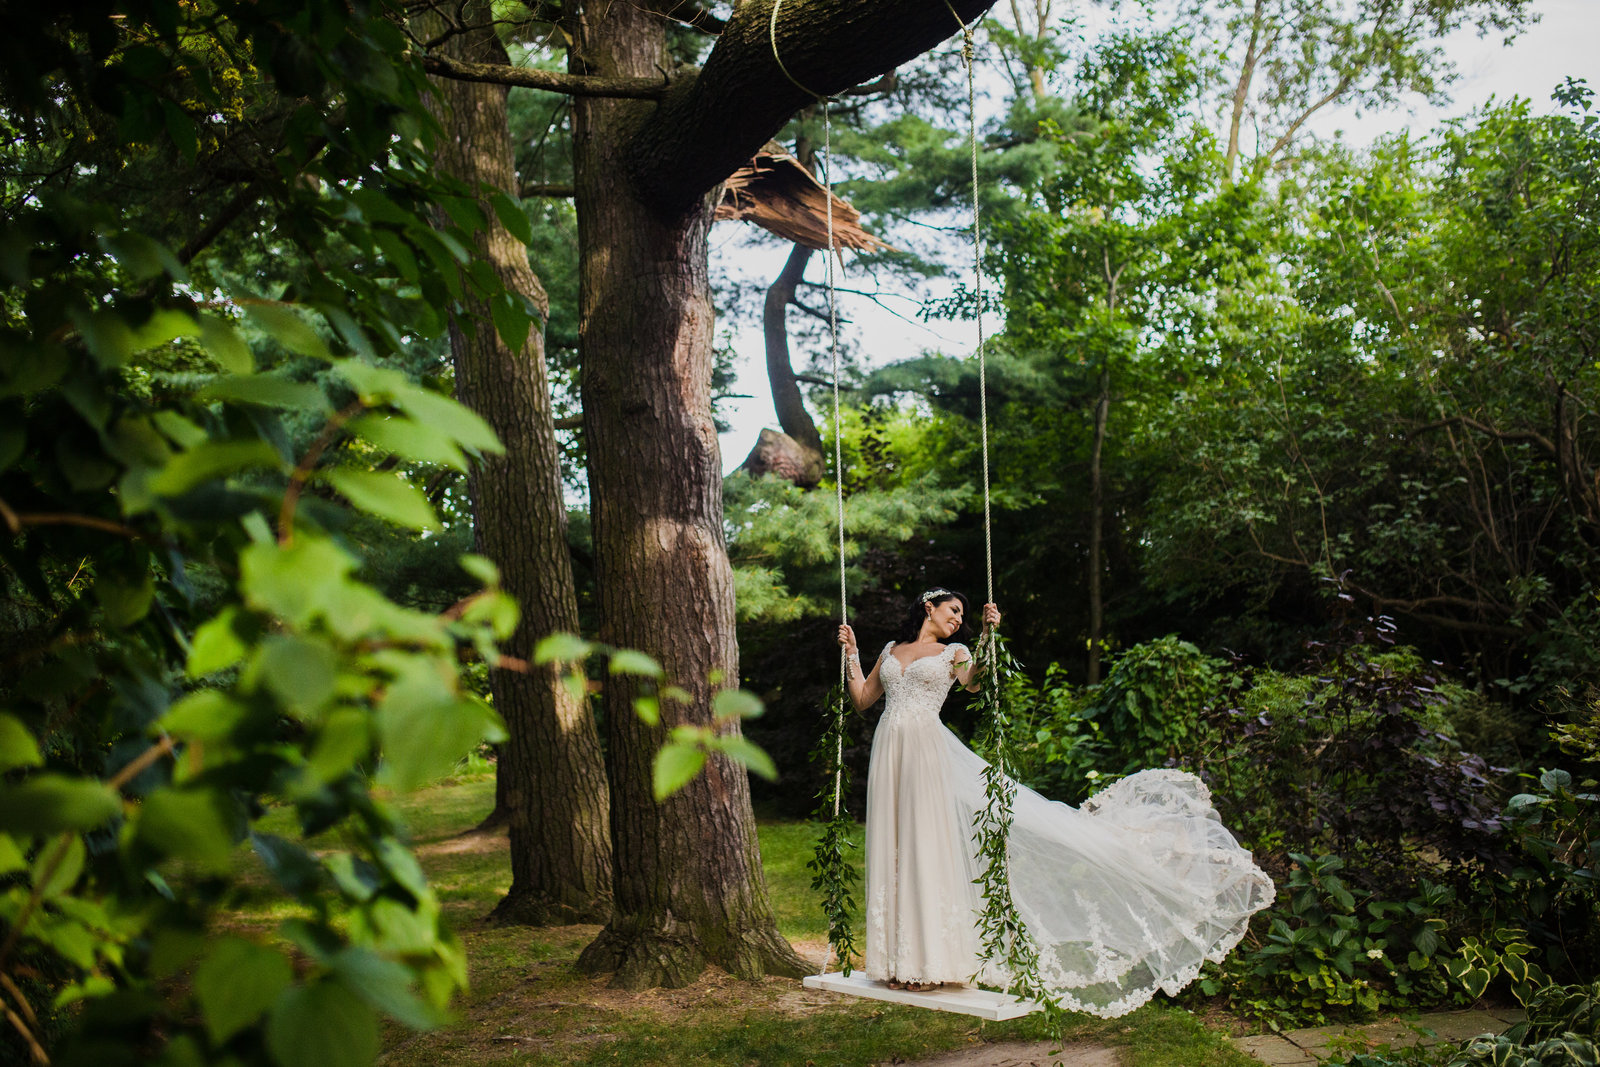 7 Bride on wedding day on swing